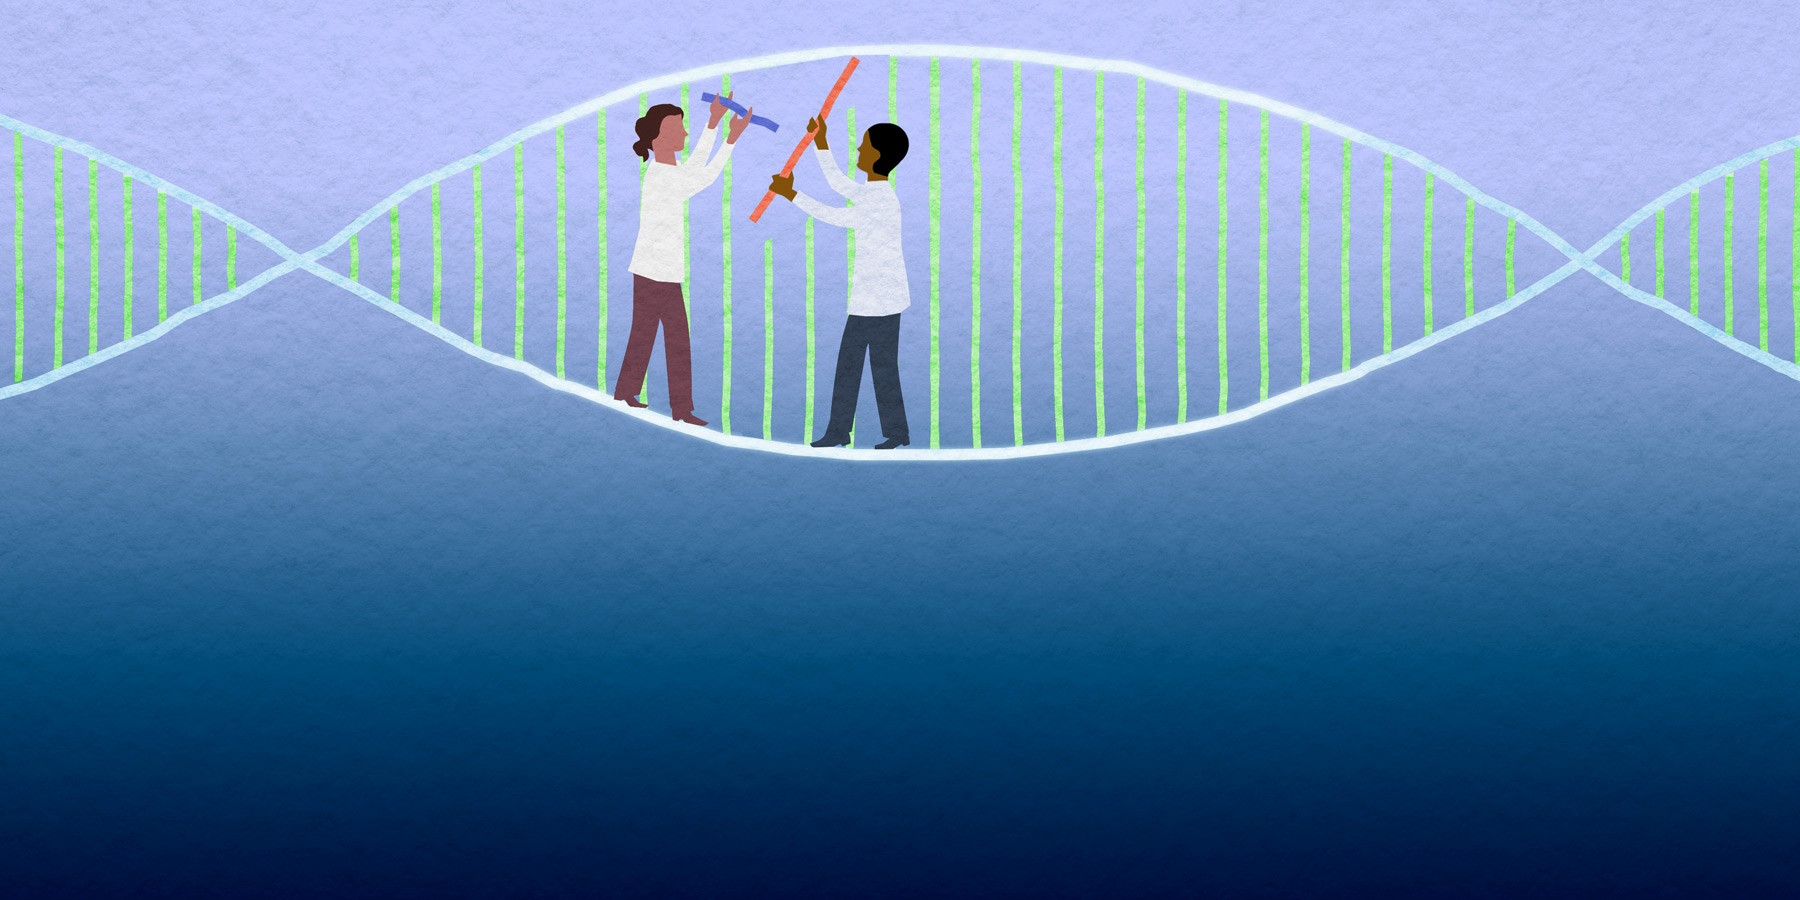 What Should Clinicians Do to Engage the Public About Gene Editing?